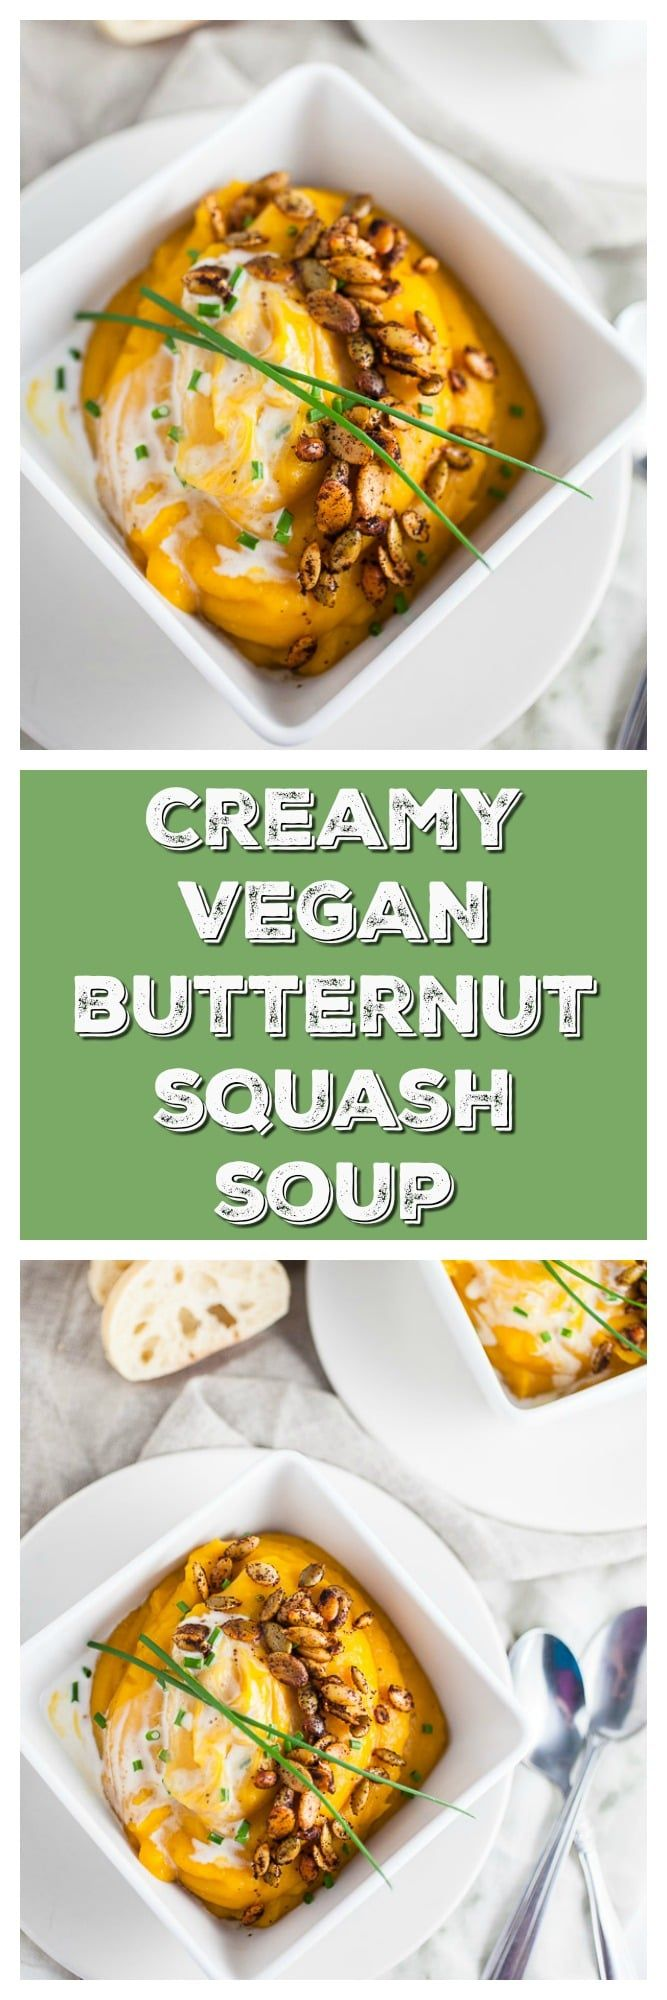 This Creamy Vegan Butternut Squash Soup is healthy, vegan, and super easy to make! In fact, it's one of the easiest soup recipes I've ever made. This soup is made with coconut milk and topped with roasted spicy pepitas. It's savory, sweet, and spicy at the same time. The perfect soup for fall or anytime! #butternutsquash #soup #vegan #coconutmilk